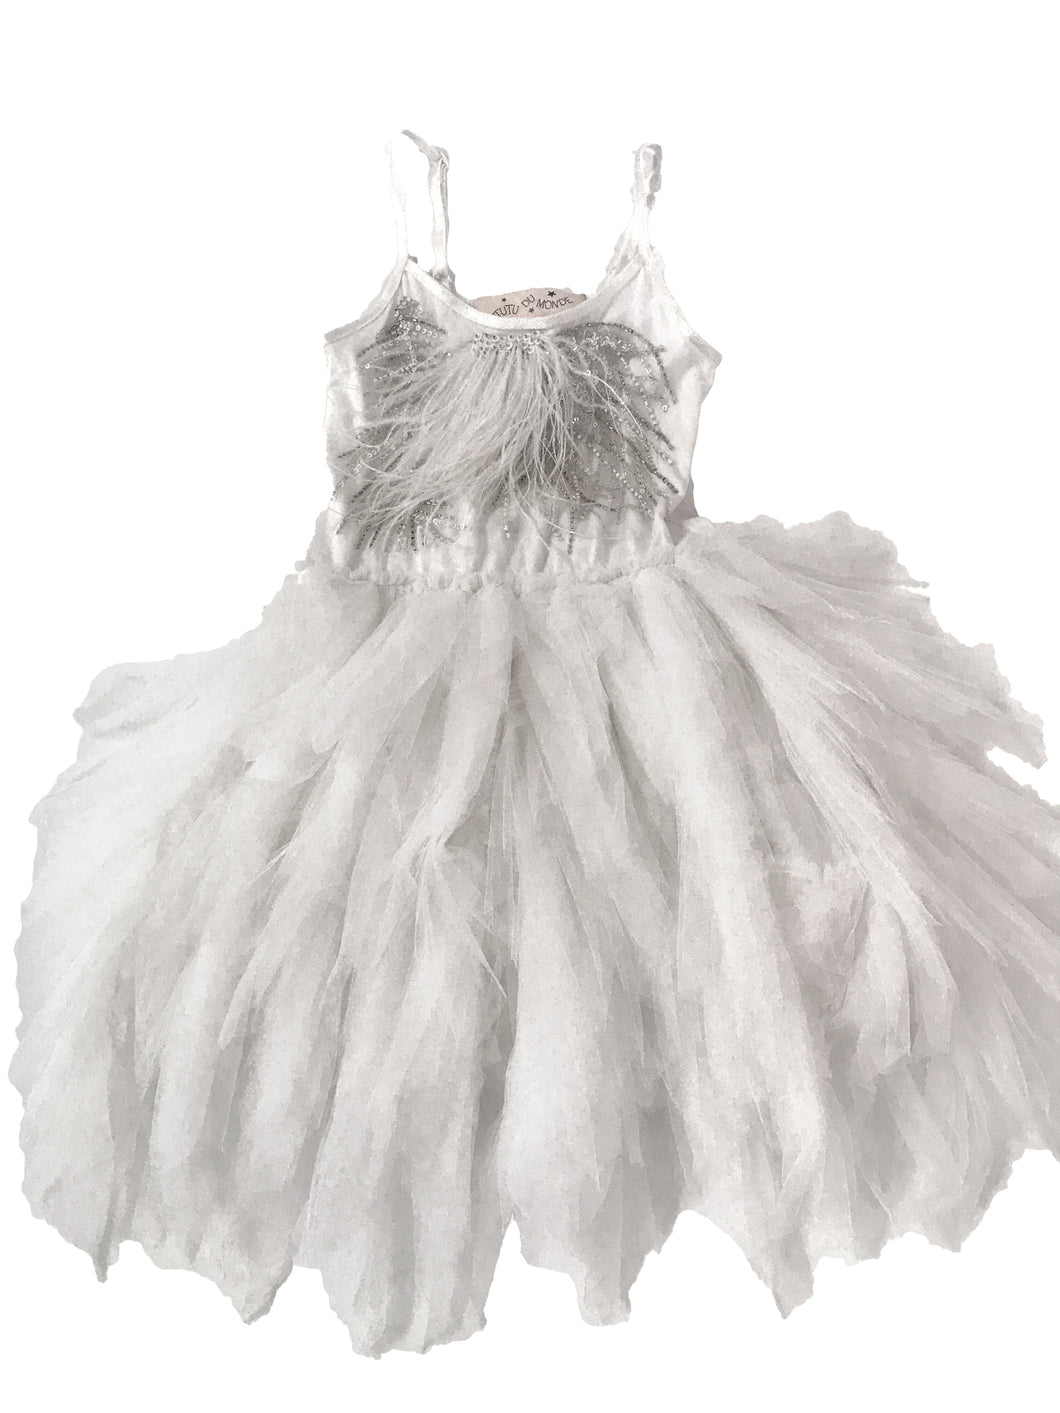 Tutu du Monde Decadent Dream Dress Milk White